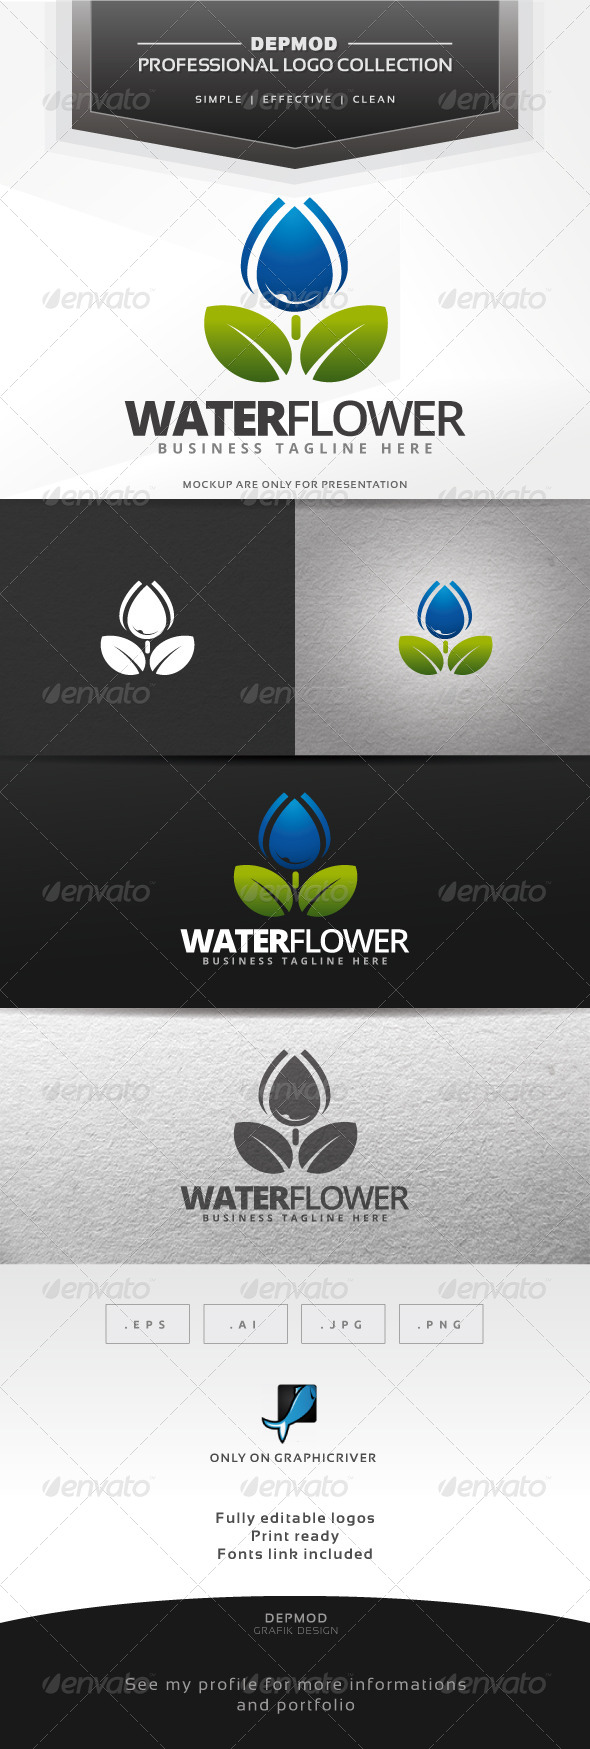 Water Flower Logo